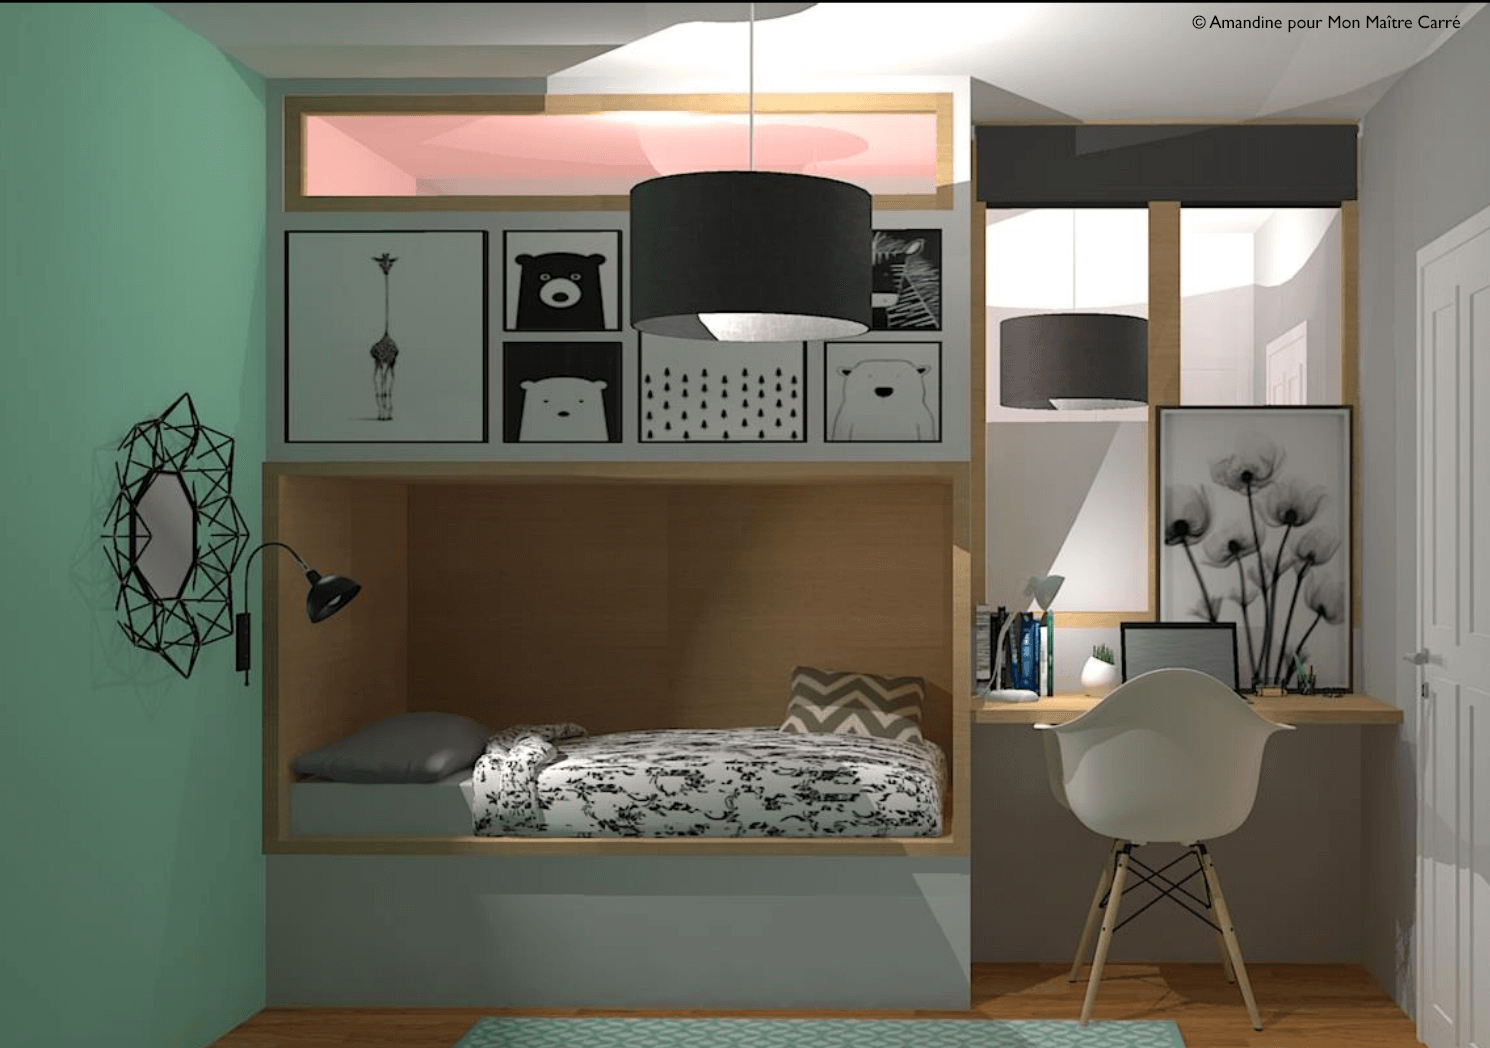 avant apr s transformation d un s jour en 2 chambres d enfants. Black Bedroom Furniture Sets. Home Design Ideas